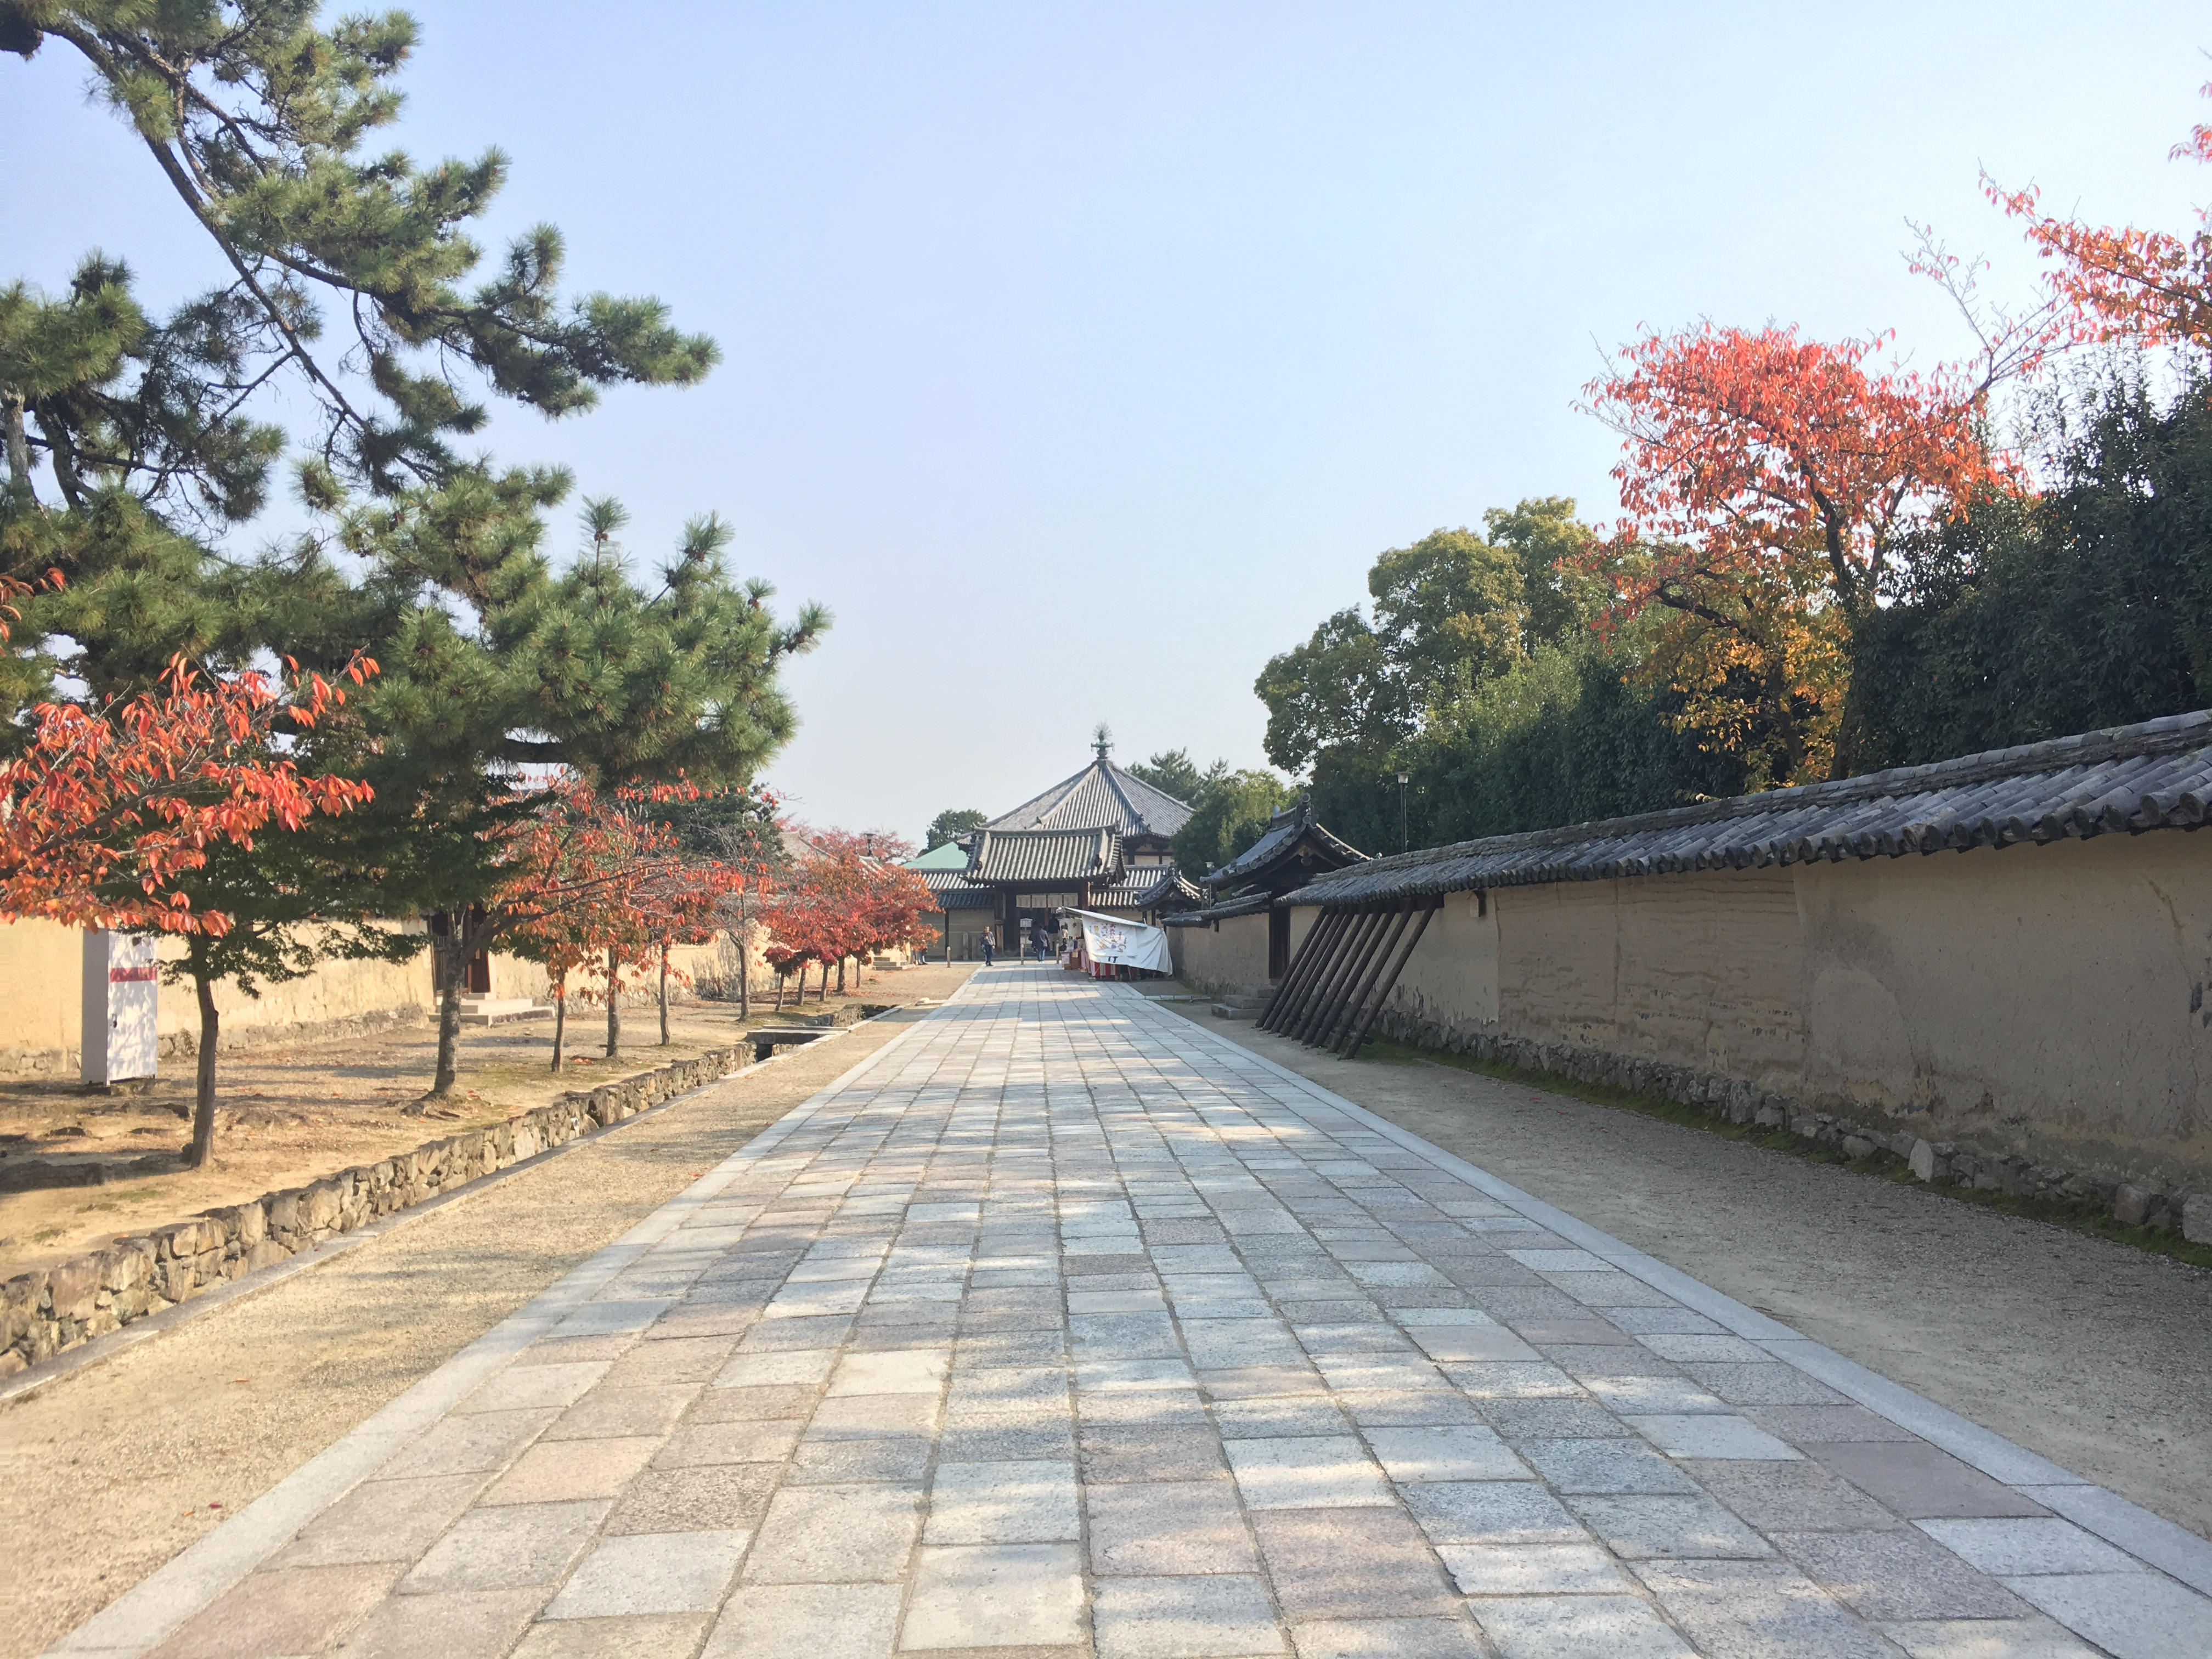 stone road at Horyu-ji temple surrounded by fall leaves